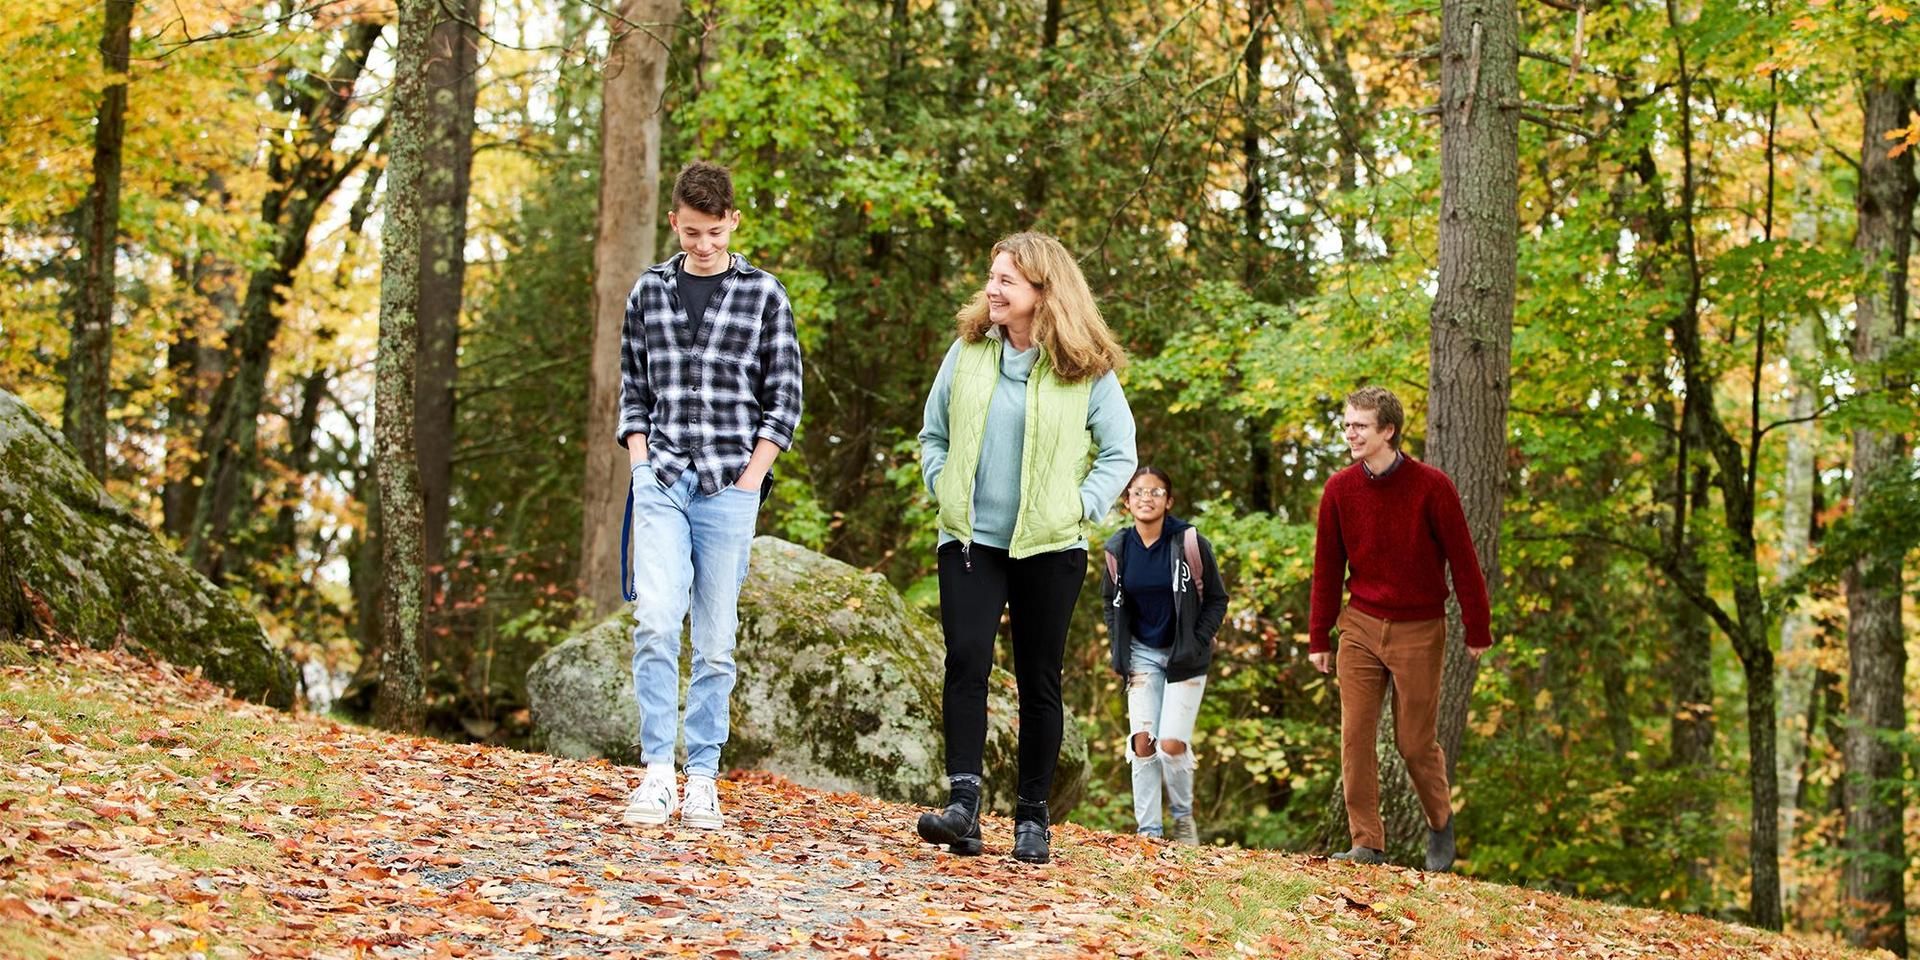 Advisors walking with their advisees on one of the campus trails.